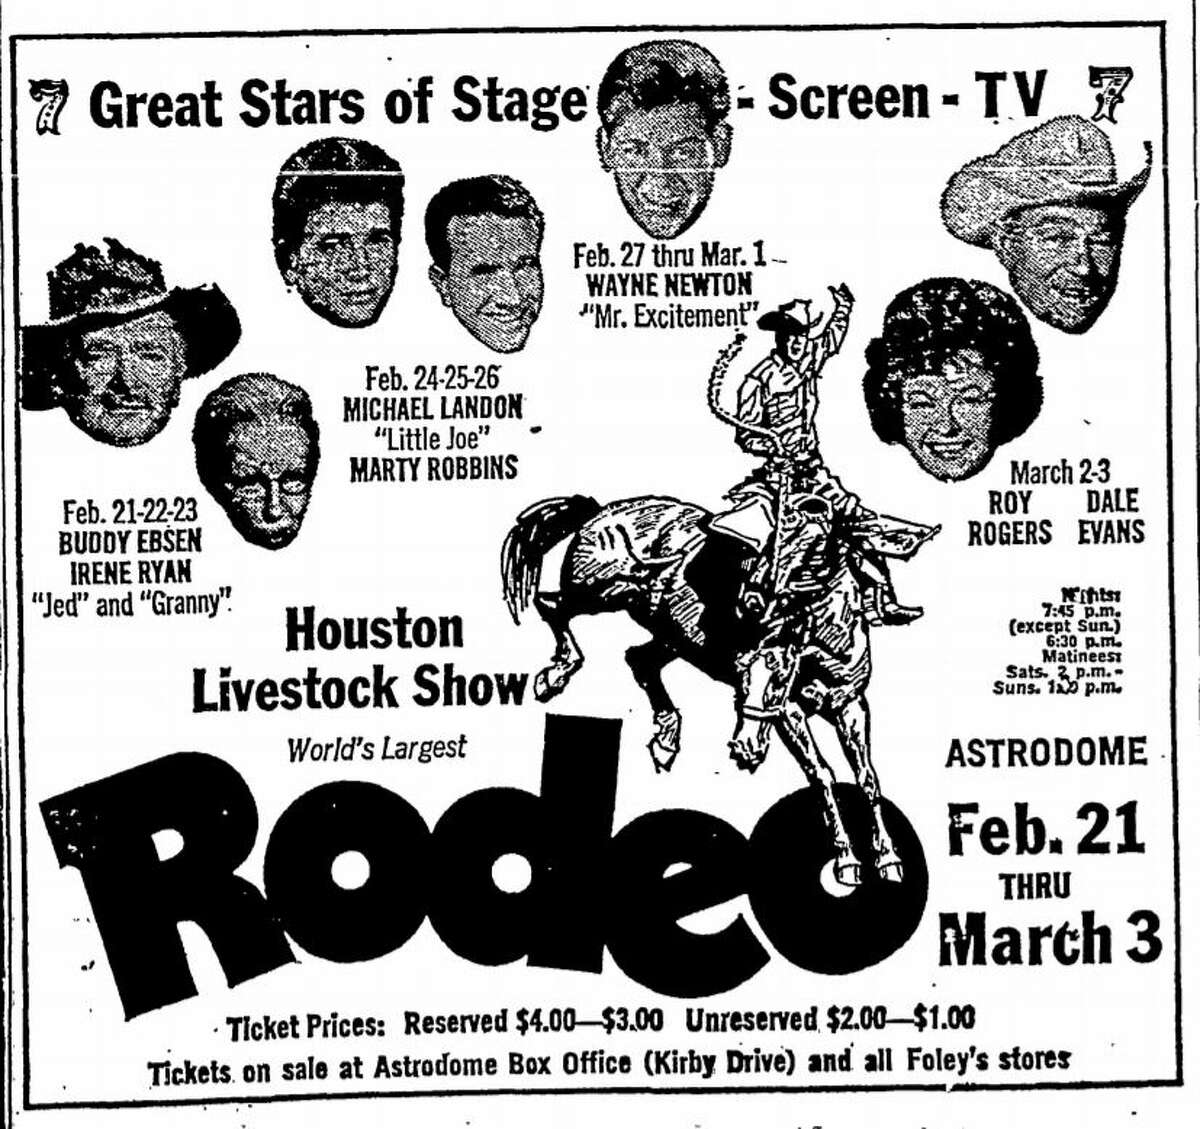 """1968 rodeo advertisement from the Chronicle. Buddy Ebsen and Irene Ryan from """"The Beverly Hillbillies"""" and Michael Landon from """"Bonanza"""" appear."""